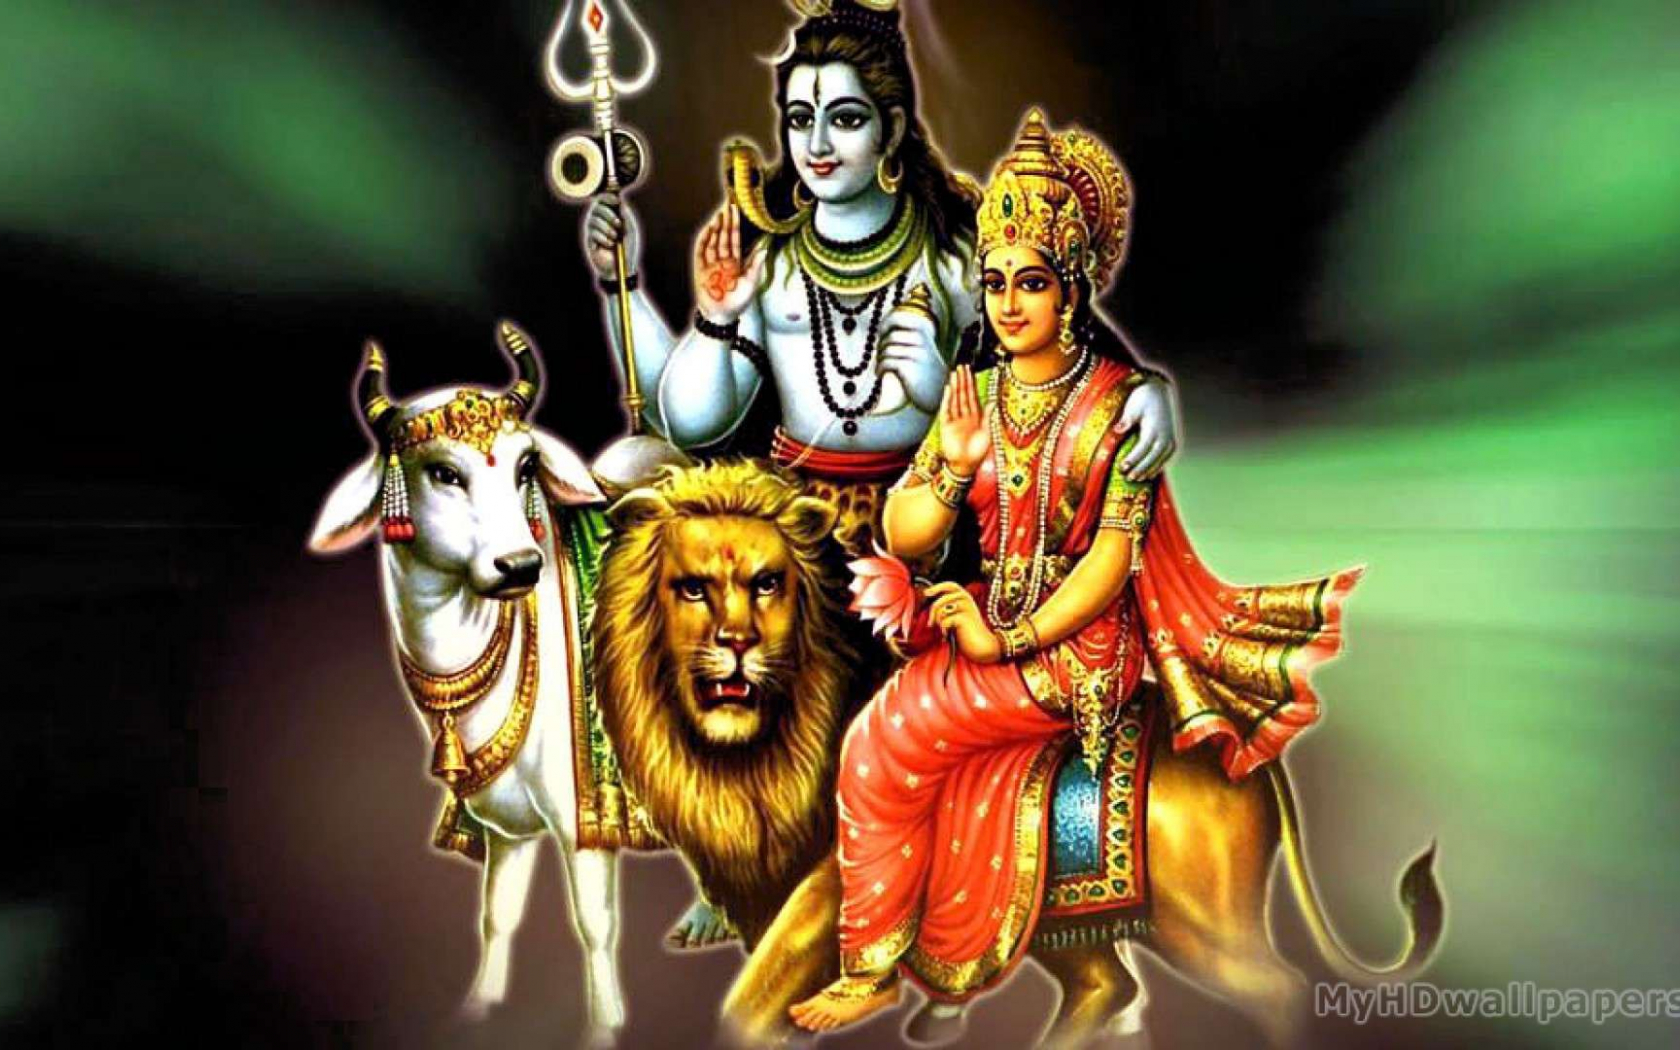 Free Download Lord Shiva And Parvati Wallpapers Hd Hd Wallpapers 1920x1080 For Your Desktop Mobile Tablet Explore 49 Lord Shiva Hd Wallpapers Hd Hindu God Desktop Wallpaper Hindu God